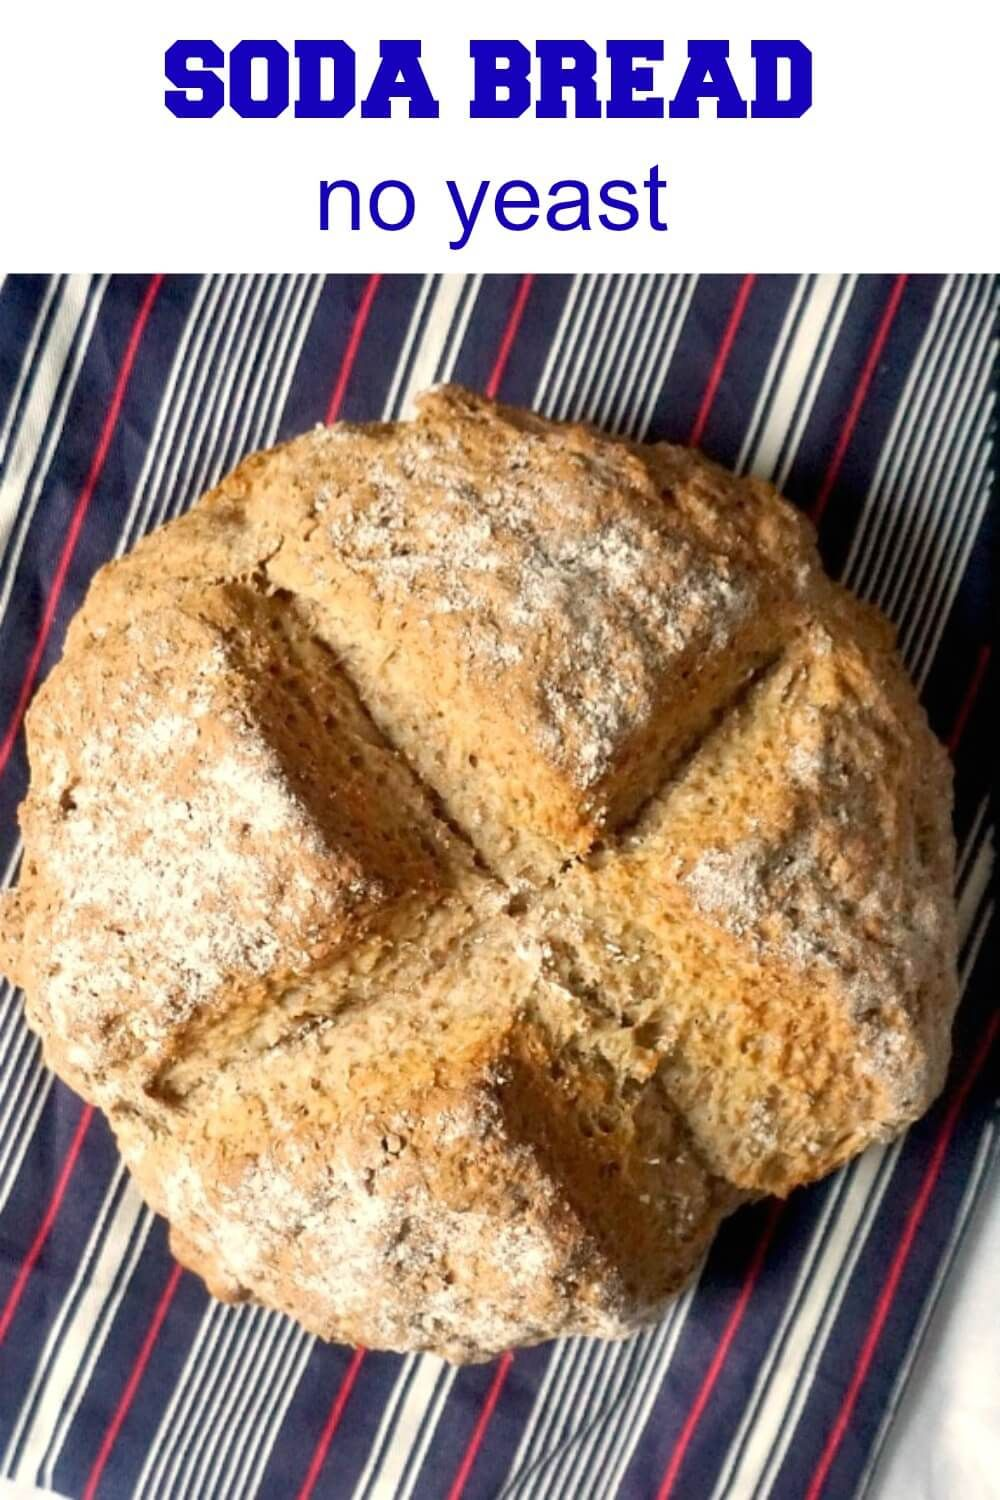 Paul Hollywood S Soda Bread Is A Fantastic Homemade Crusty Bread With No Yeast In 2020 Paul Hollywood Soda Bread Traditional Irish Soda Bread Irish Soda Bread Recipe